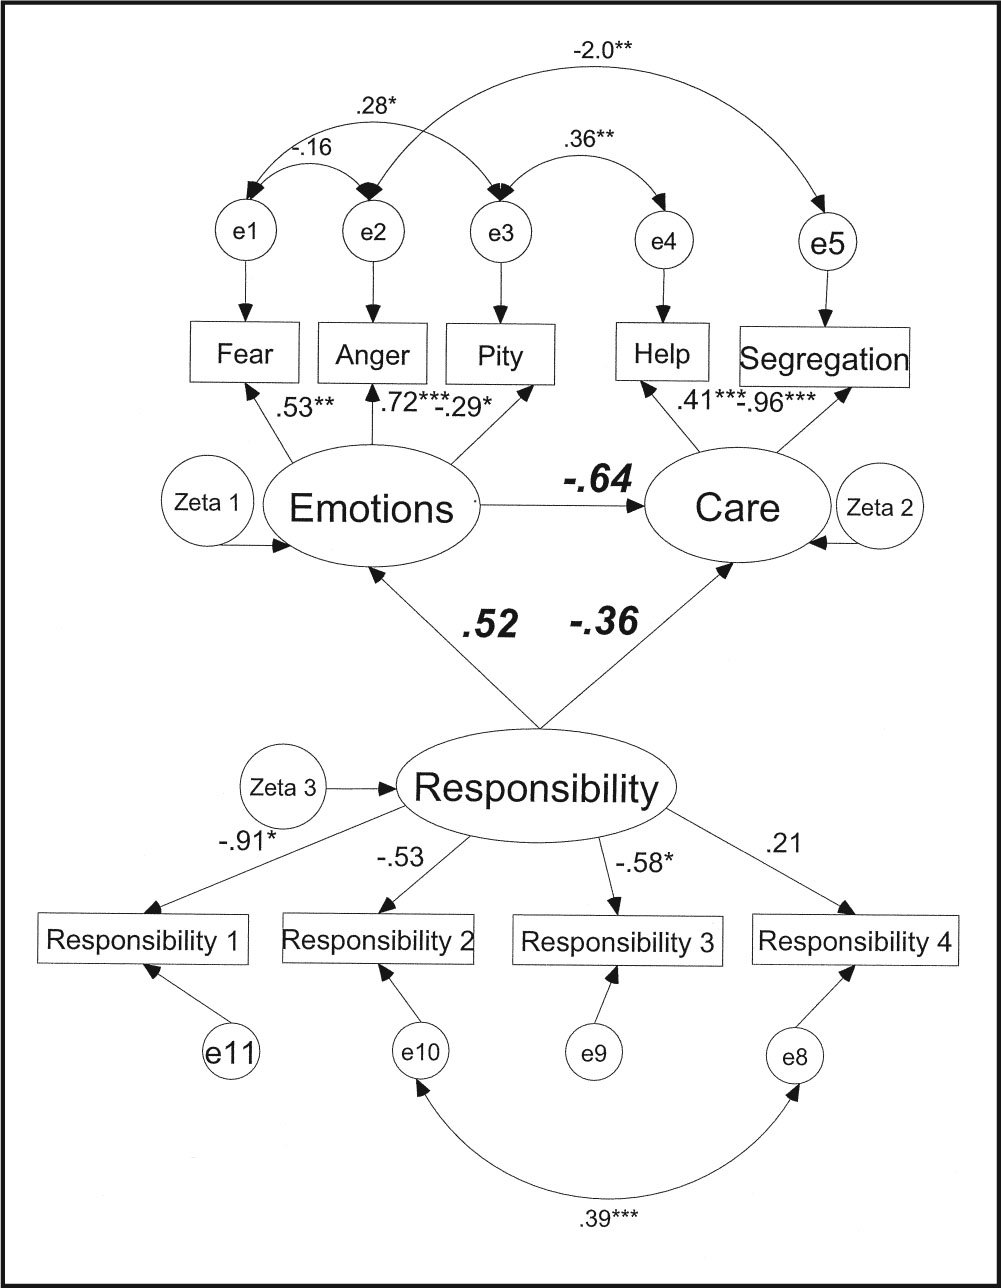 Attribution Model (Standardized Sem Coefficients) for Students' Attitudes Toward Individuals with Mental Illness After the Clinical Clerkship. *p < 0.05; **p < 0.01; †p < 0.001.